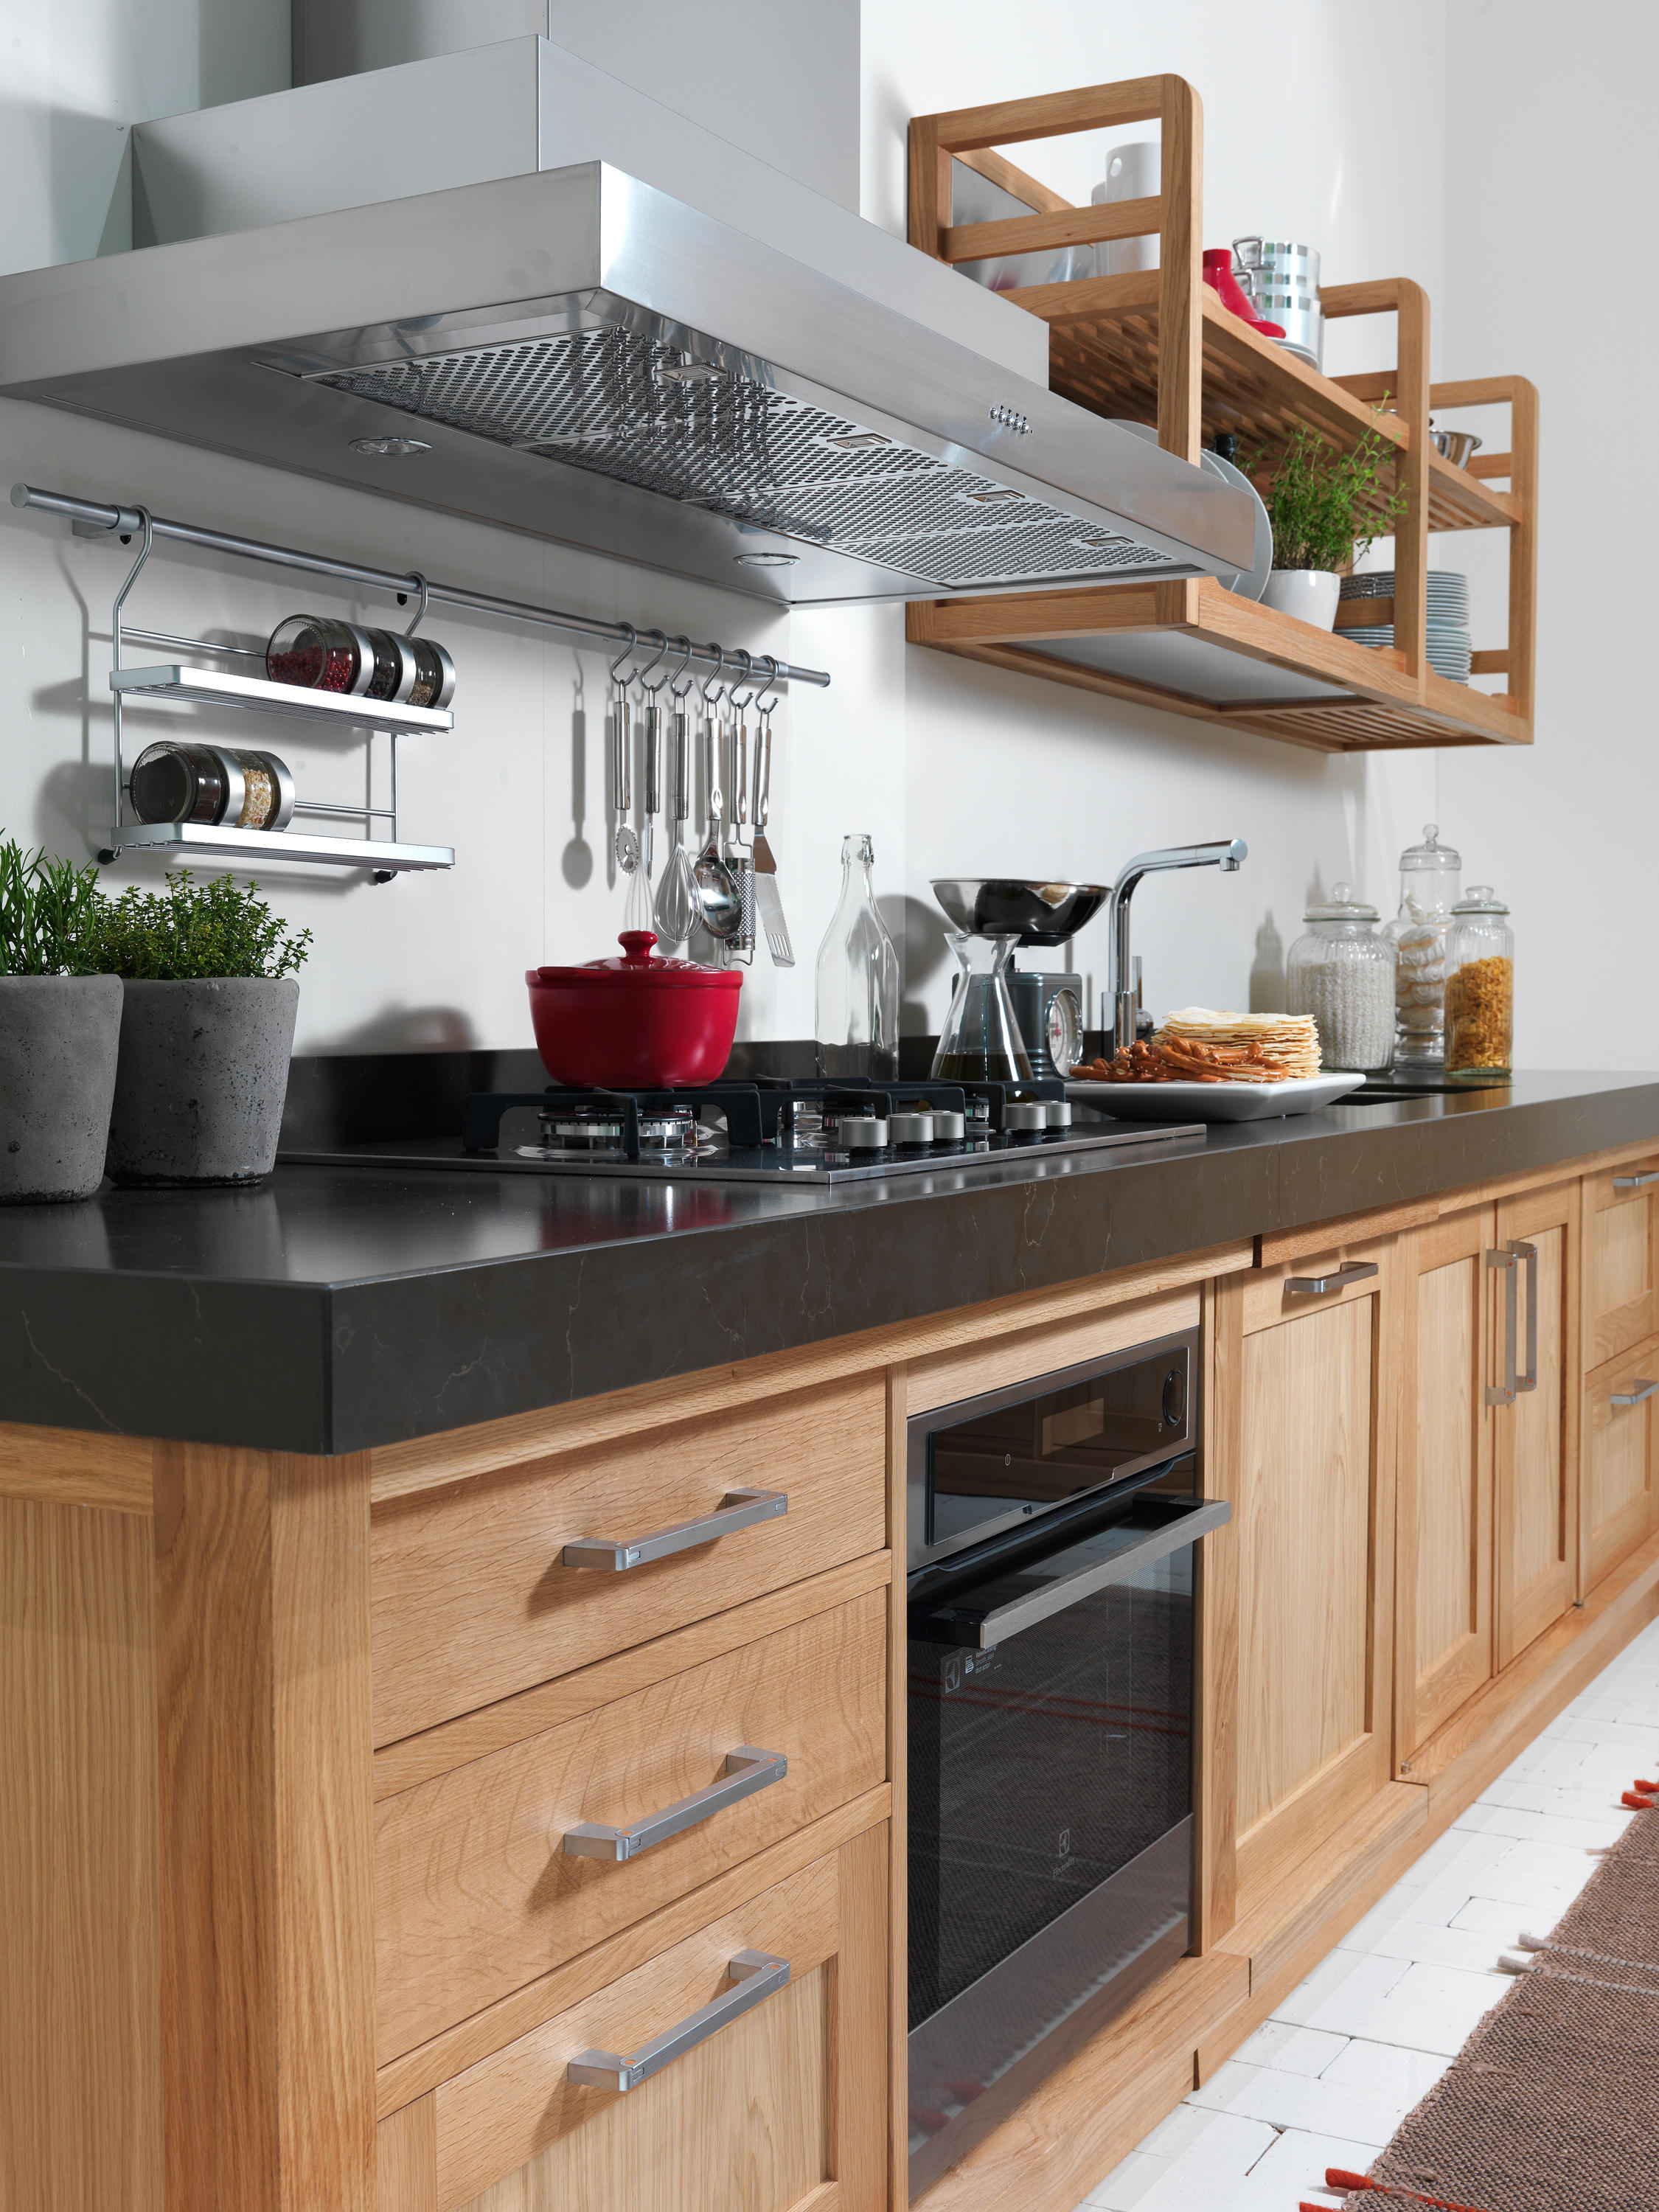 Kitchen Units Cabinets: HANGING WALL UNITS - Kitchen Cabinets From